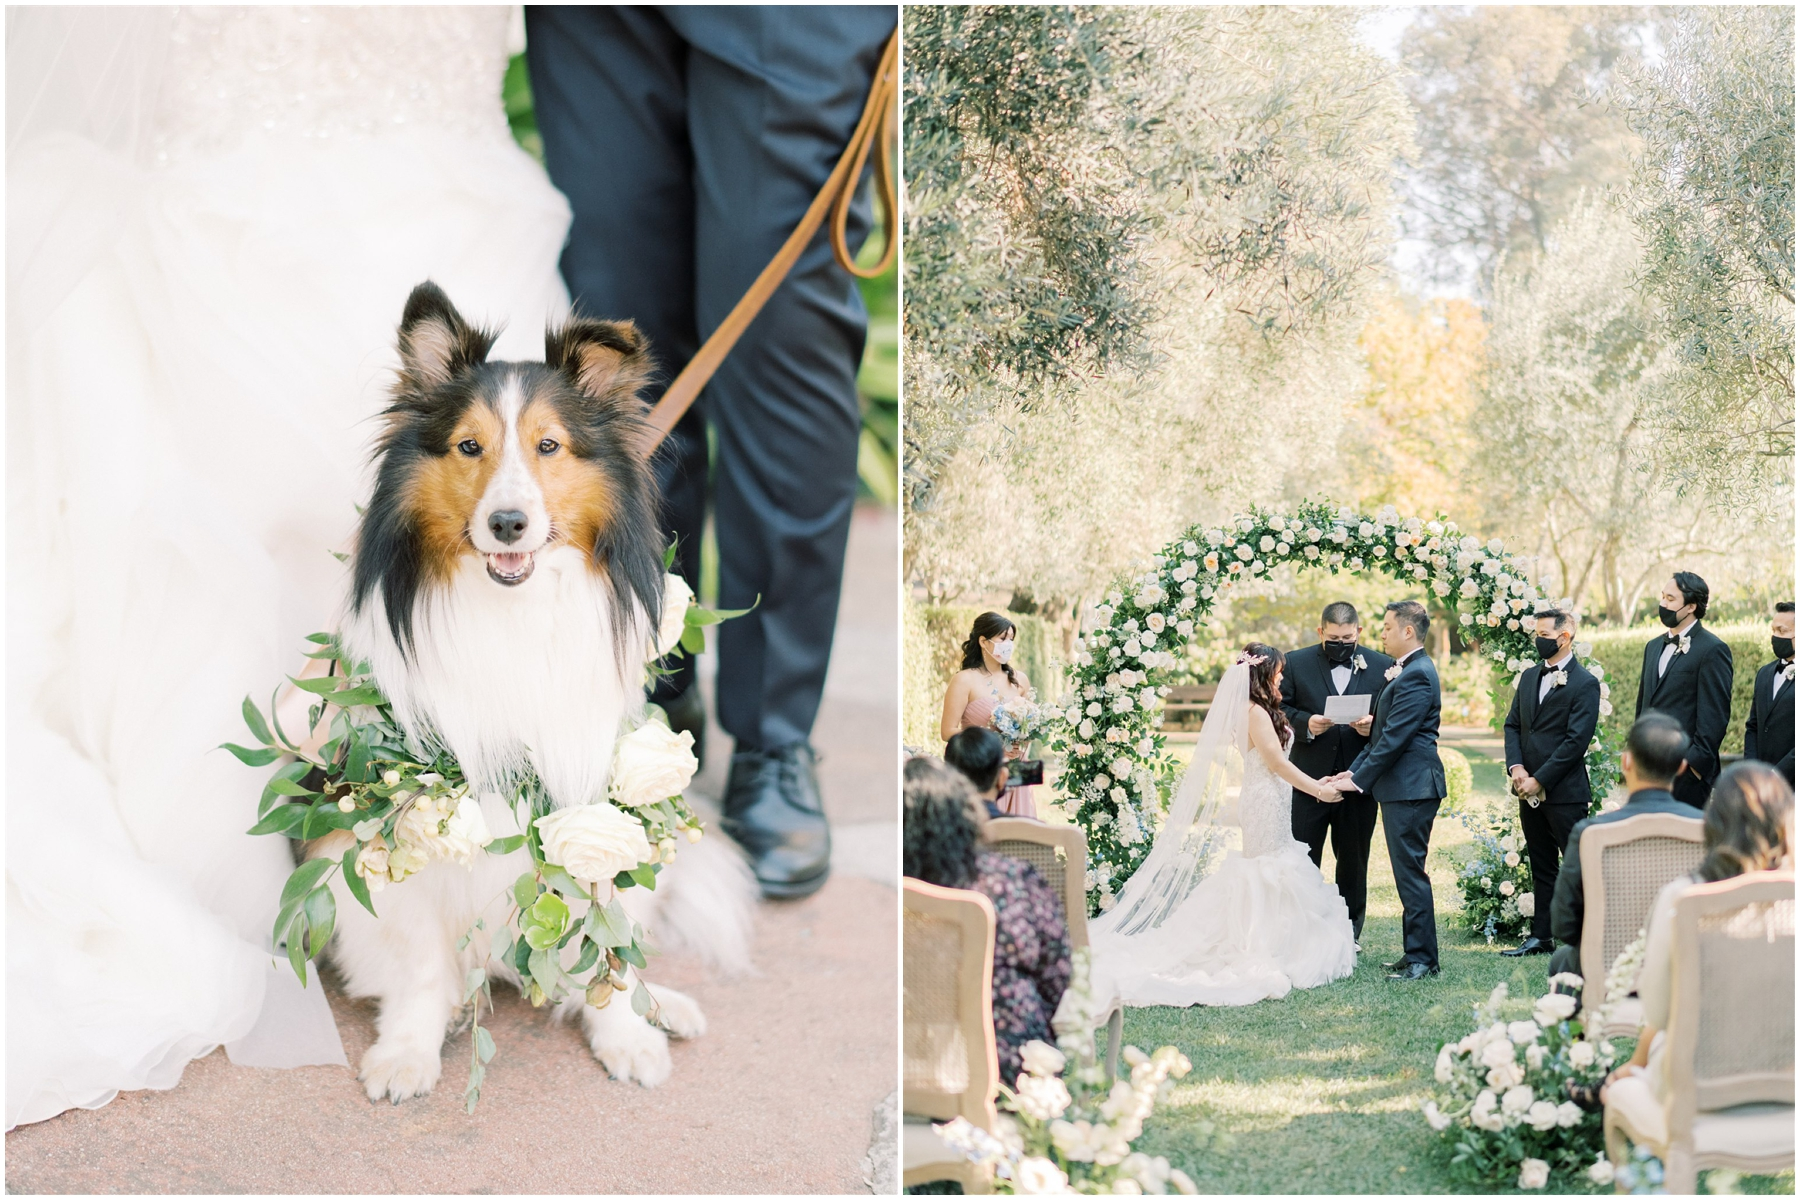 allied arts guild wedding with cute dog